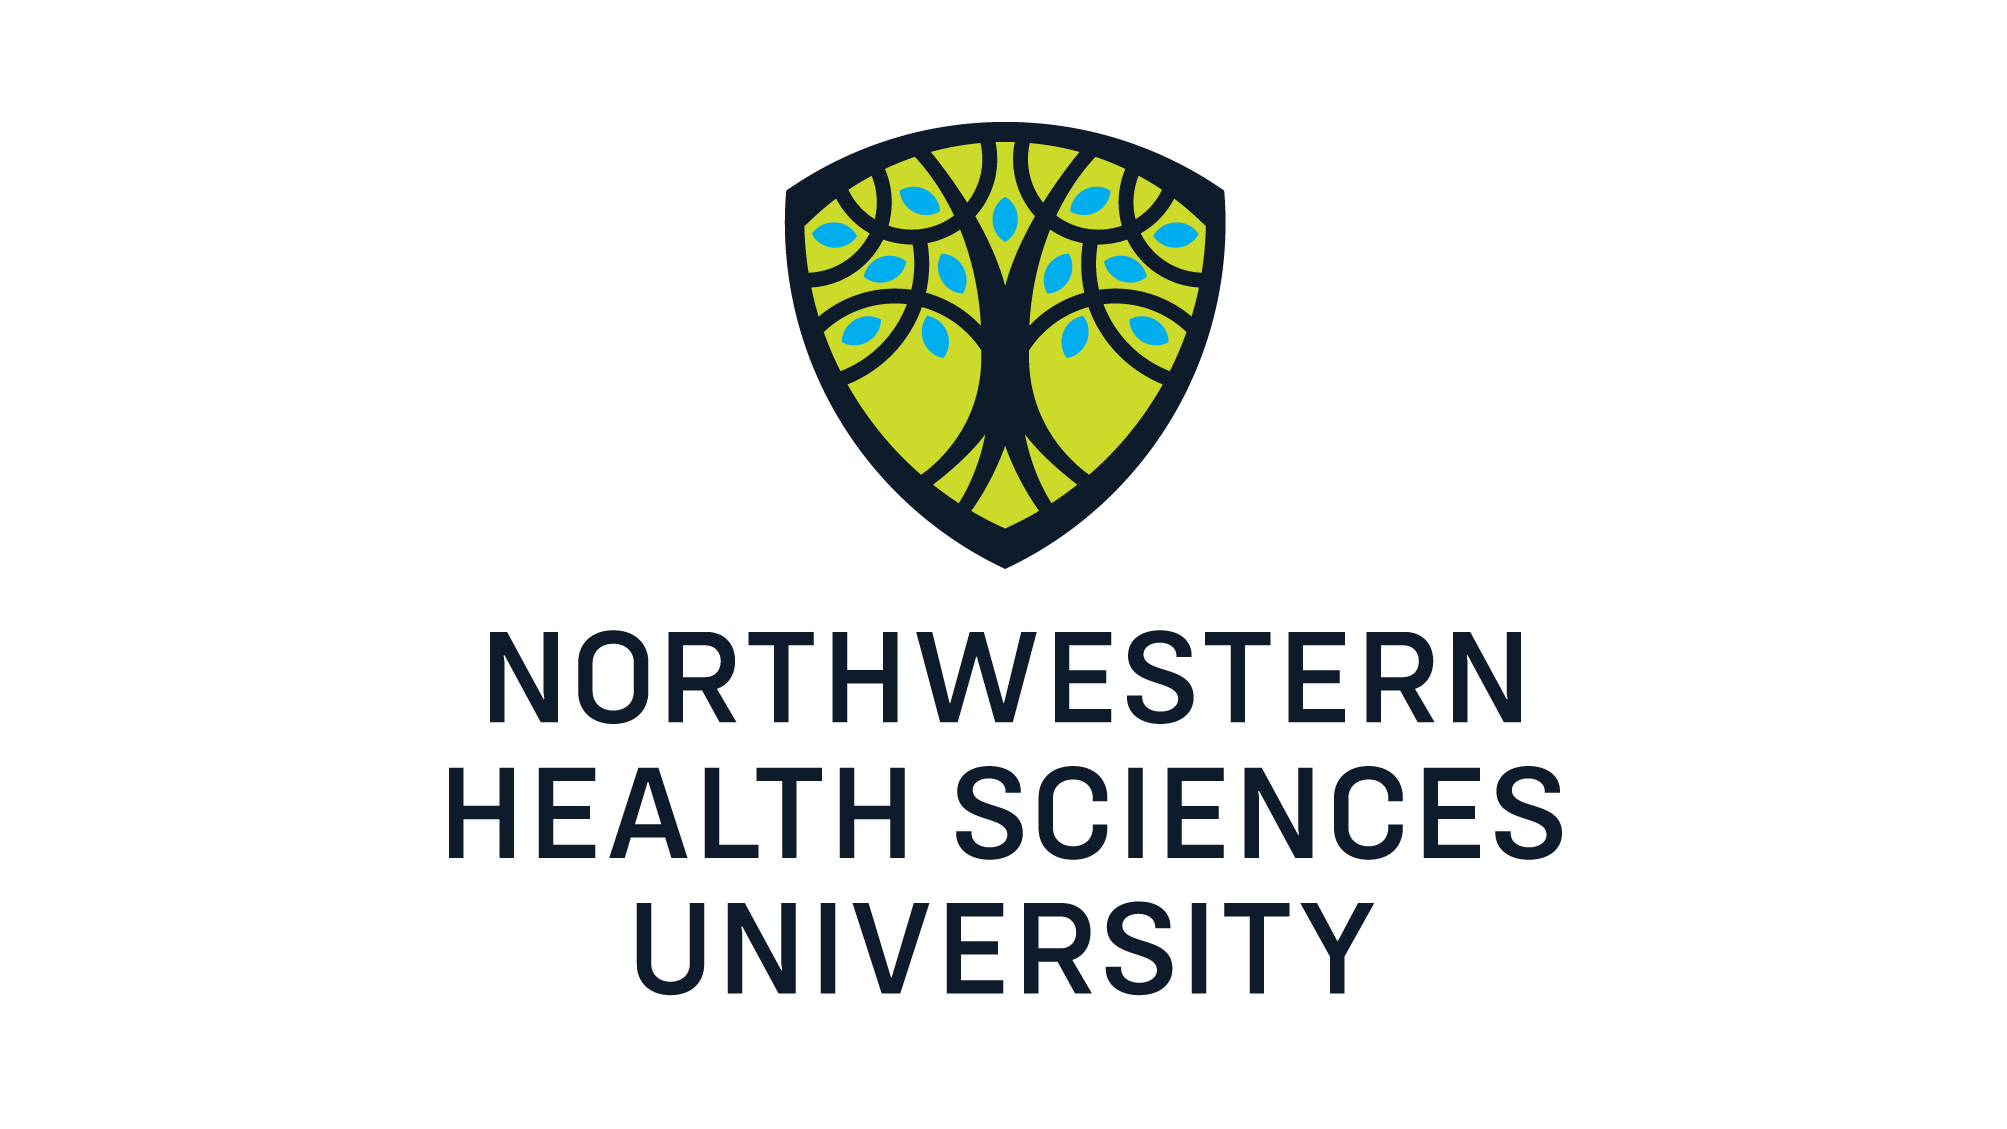 The logo for Northwestern Health Sciences University